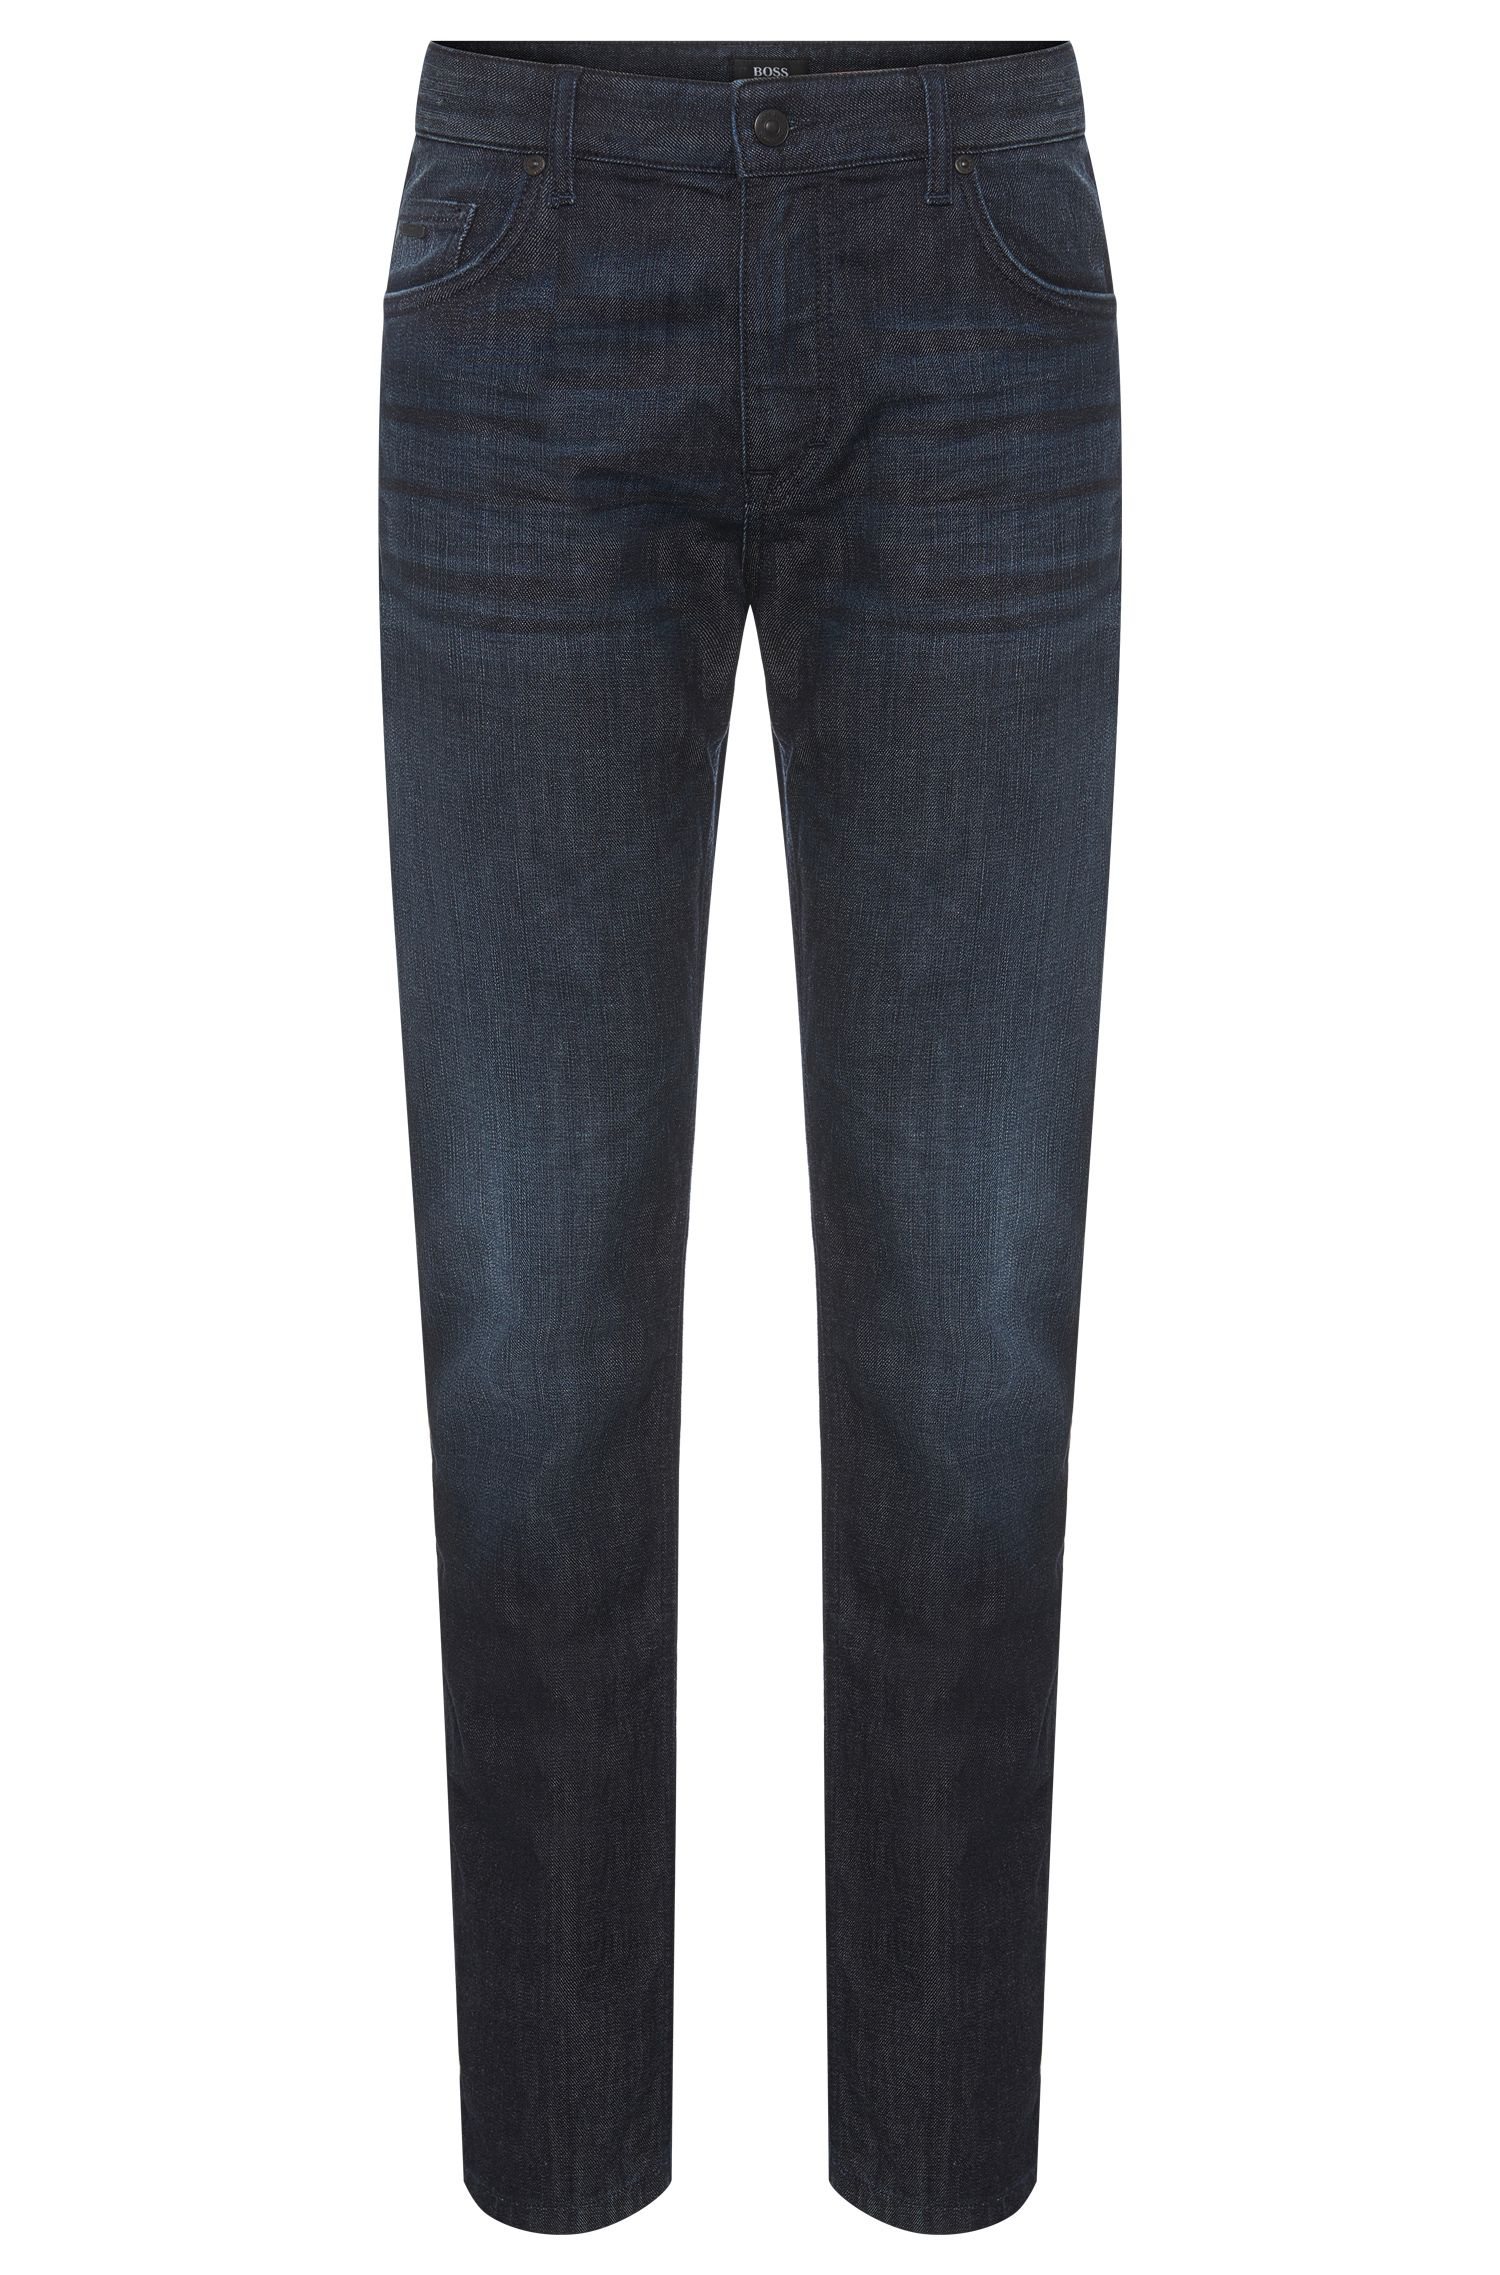 'Albany' | Comfort Fit, 11 oz Stretch Cotton Jeans